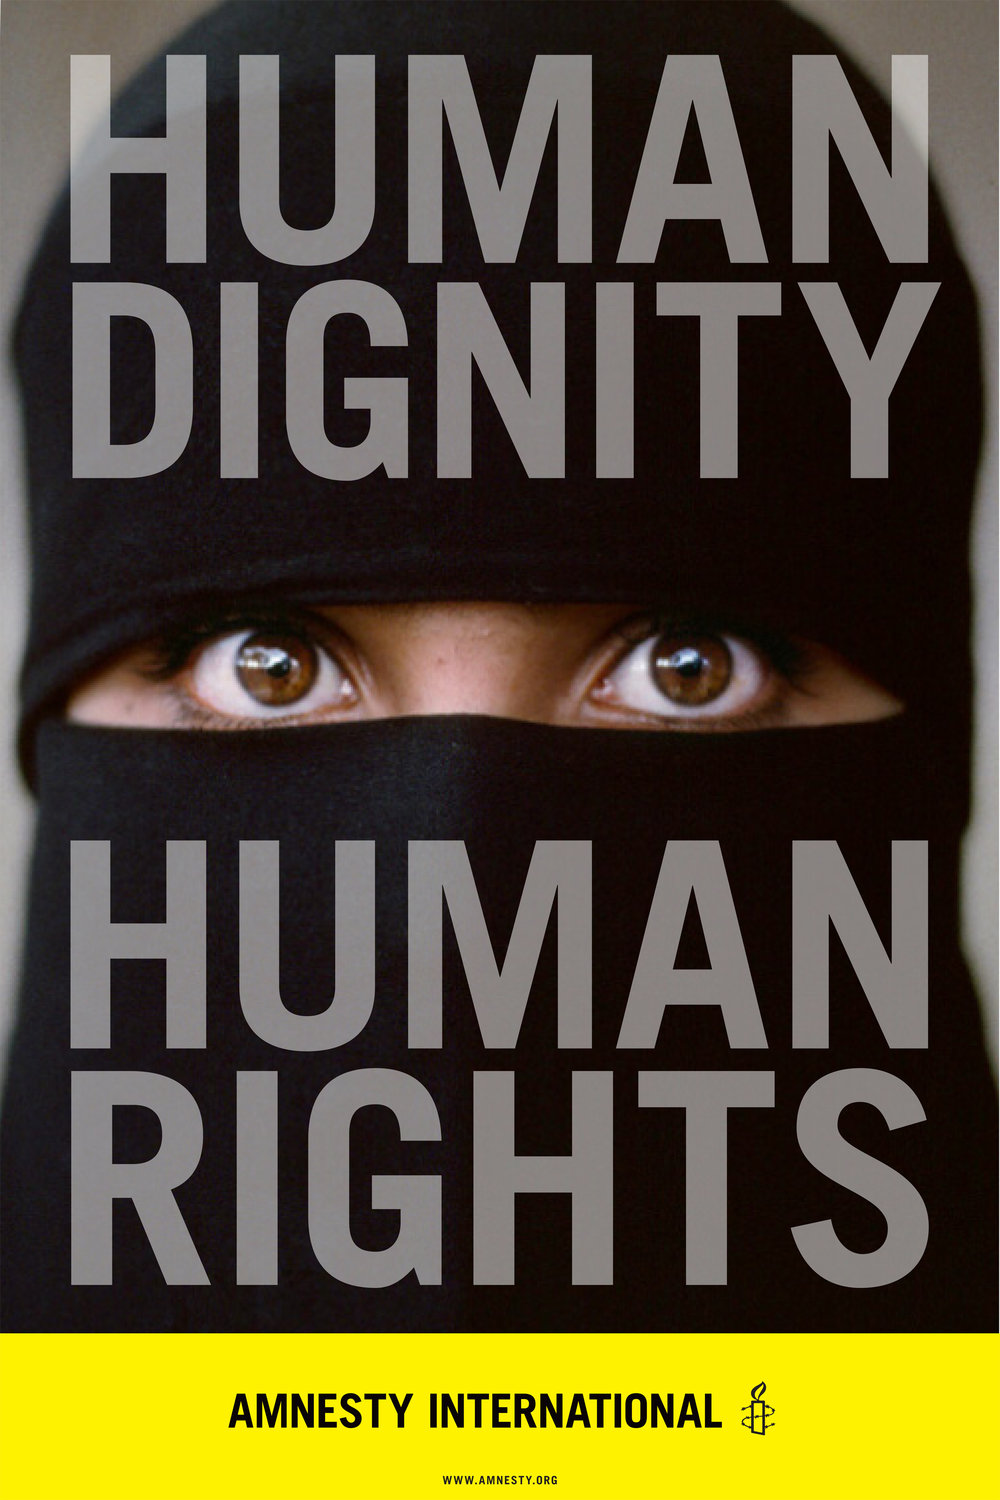 amnesty international poster carla rozman woody pirtle steve mccurry photography